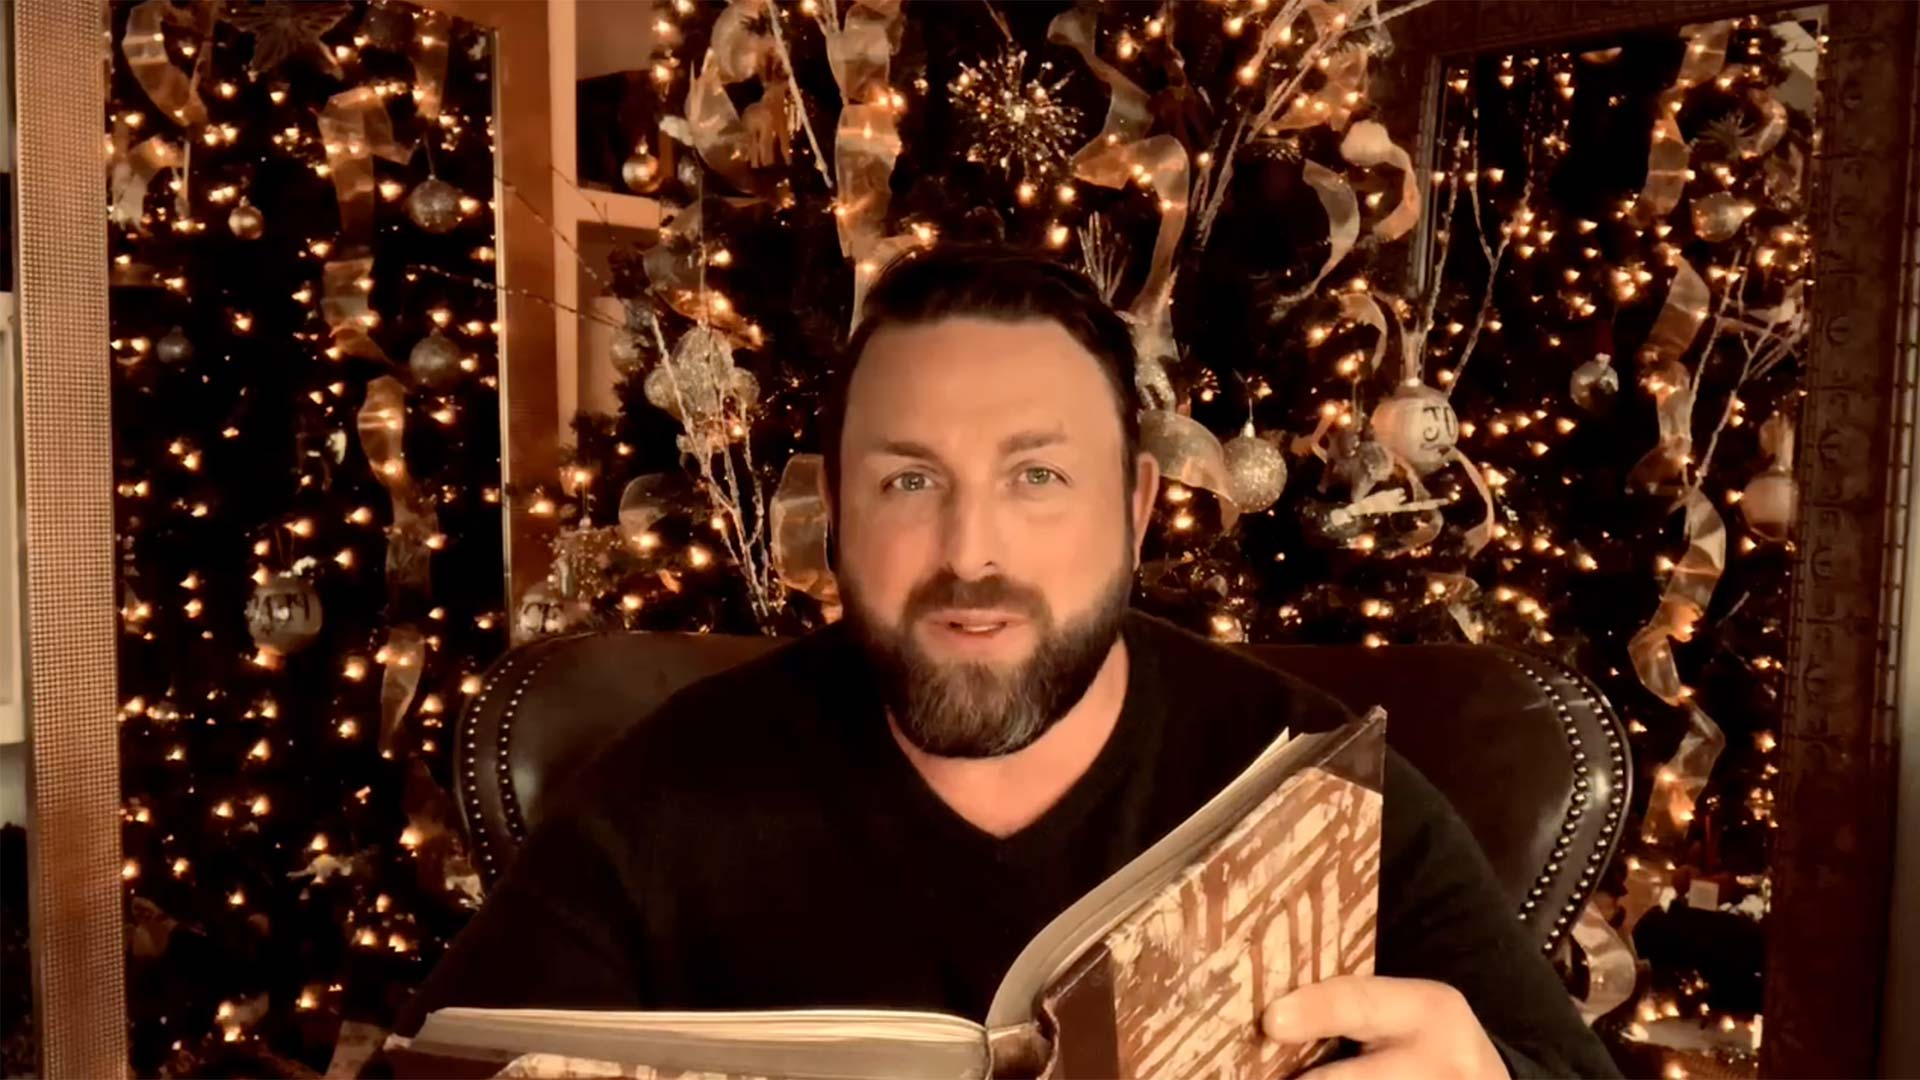 Watch Johnnys Reading of Twas the Night Before Christmas